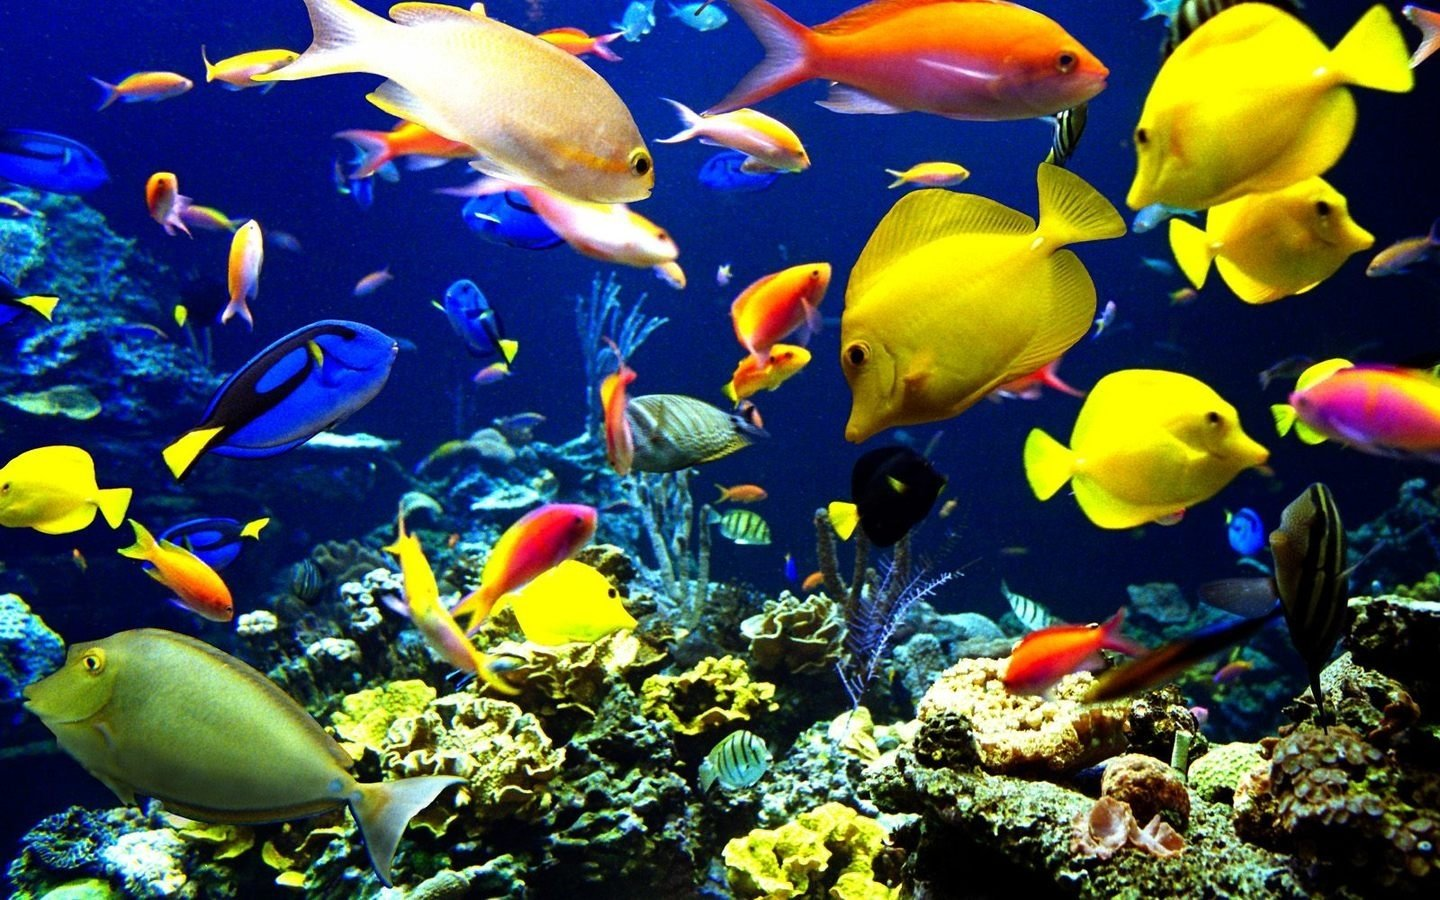 Download 9000 Wallpaper Abyss Fish HD Paling Baru